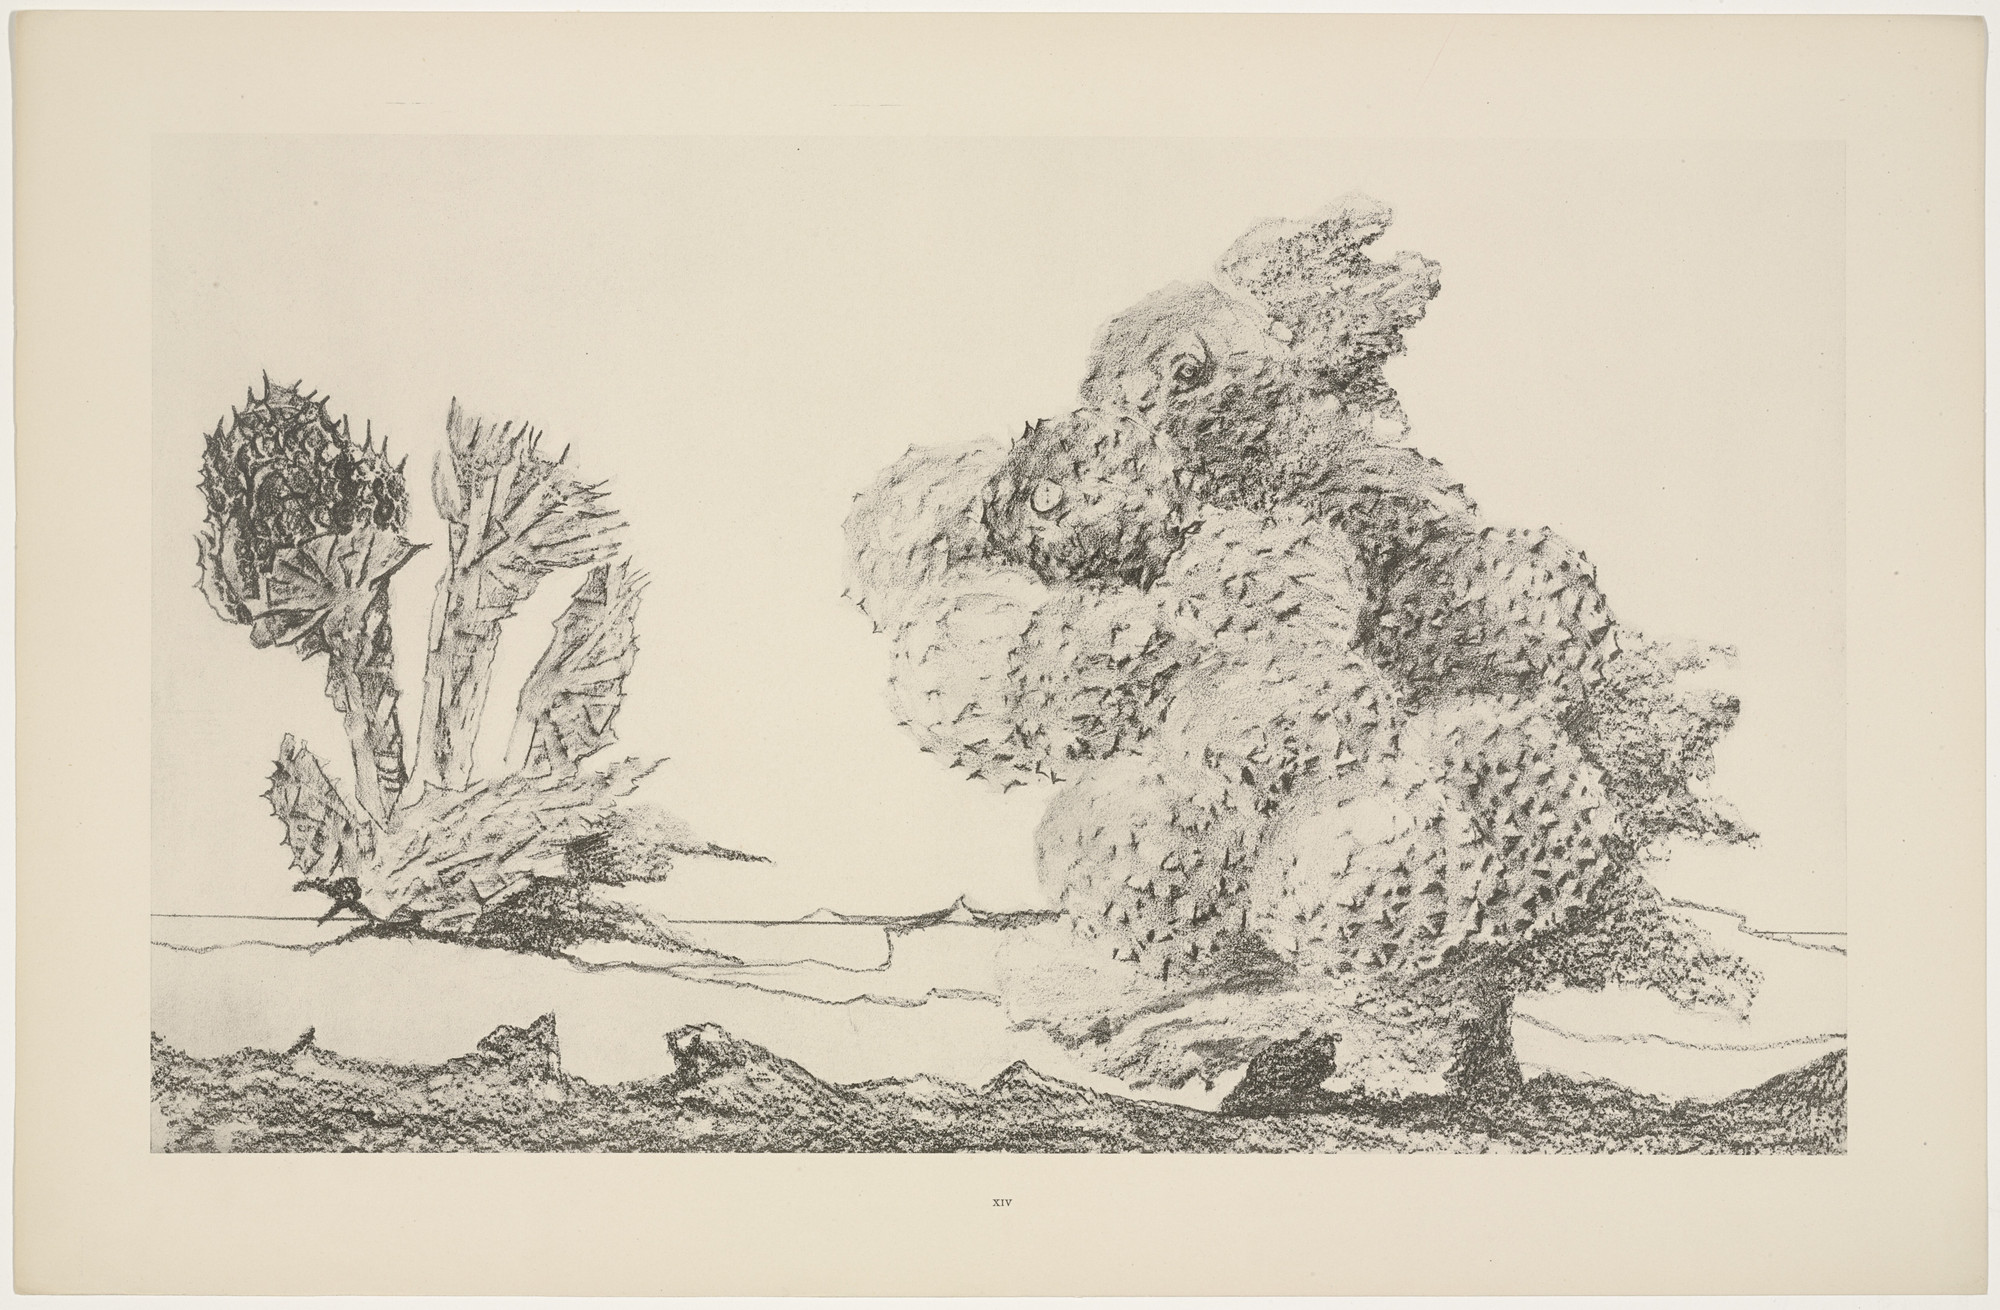 Max Ernst. The Chestnut Trees Take-Off (Le Start du châtaignier) from Natural History (Histoire naturelle). c. 1925, published 1926